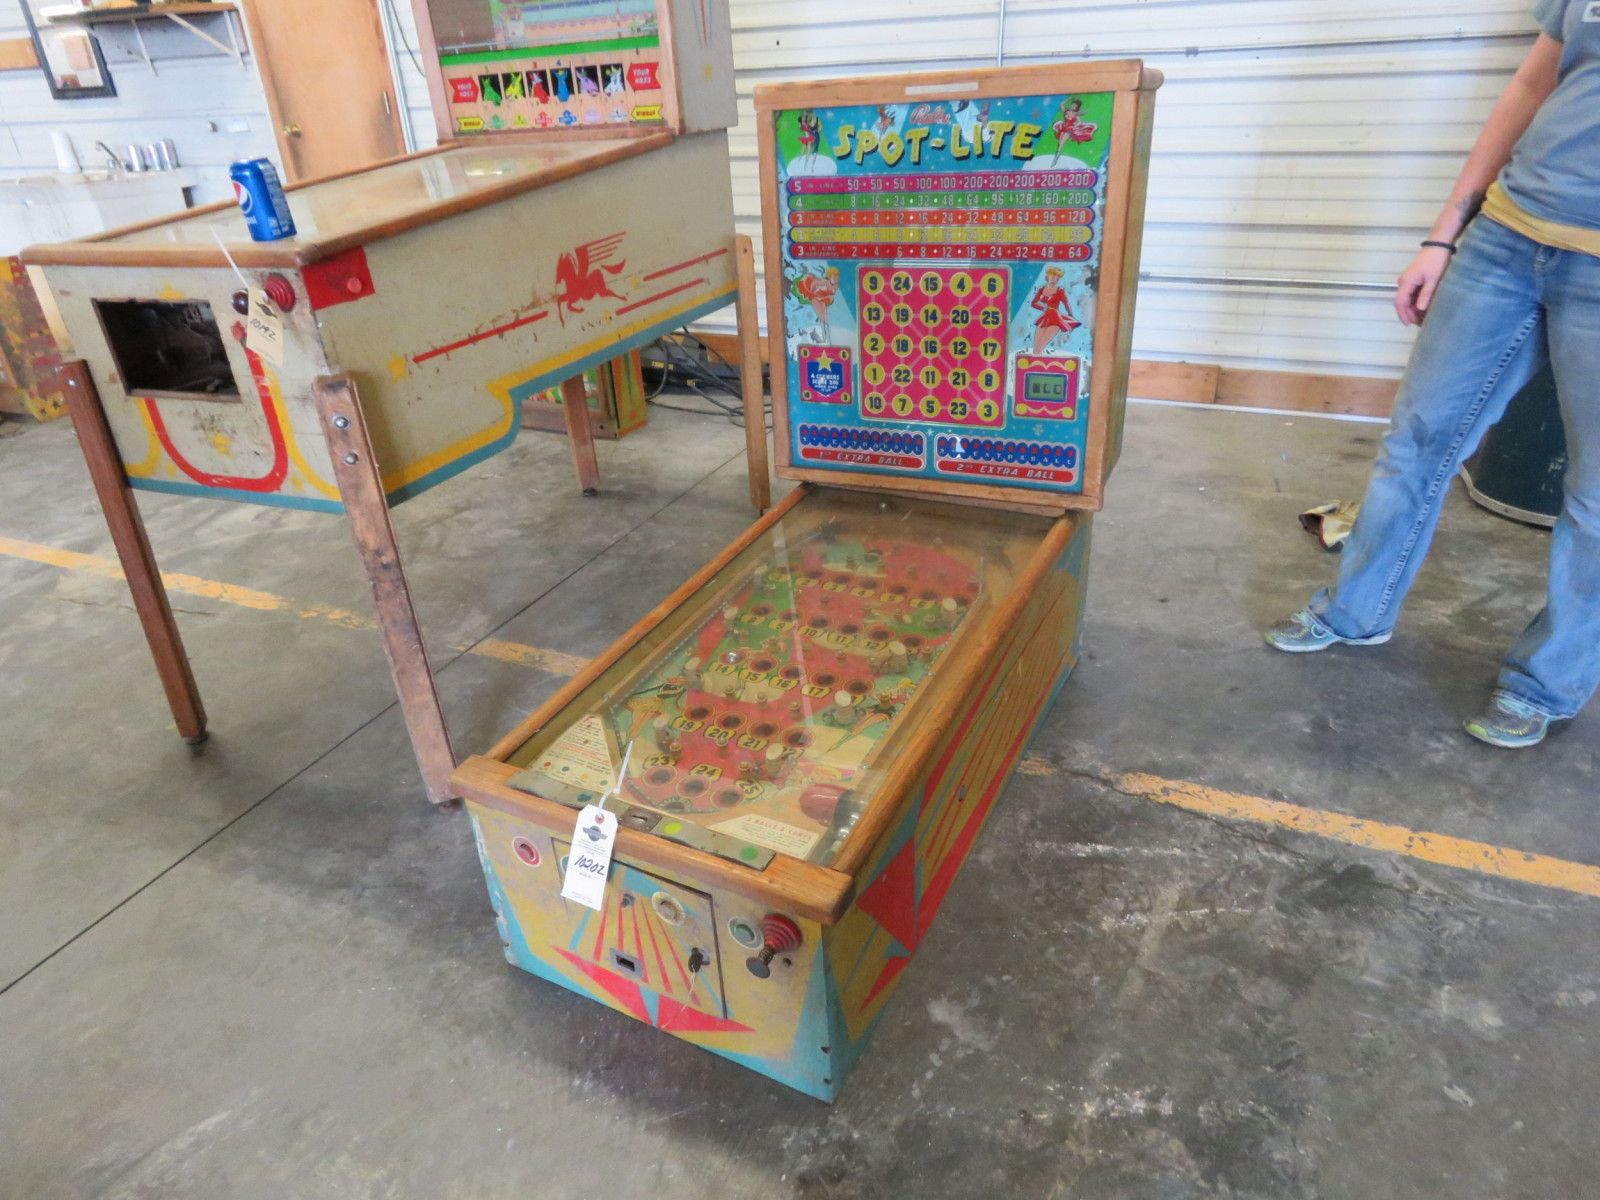 Spot-Lite Vintage Arcade-Pinball Machine by Bally - Image 2